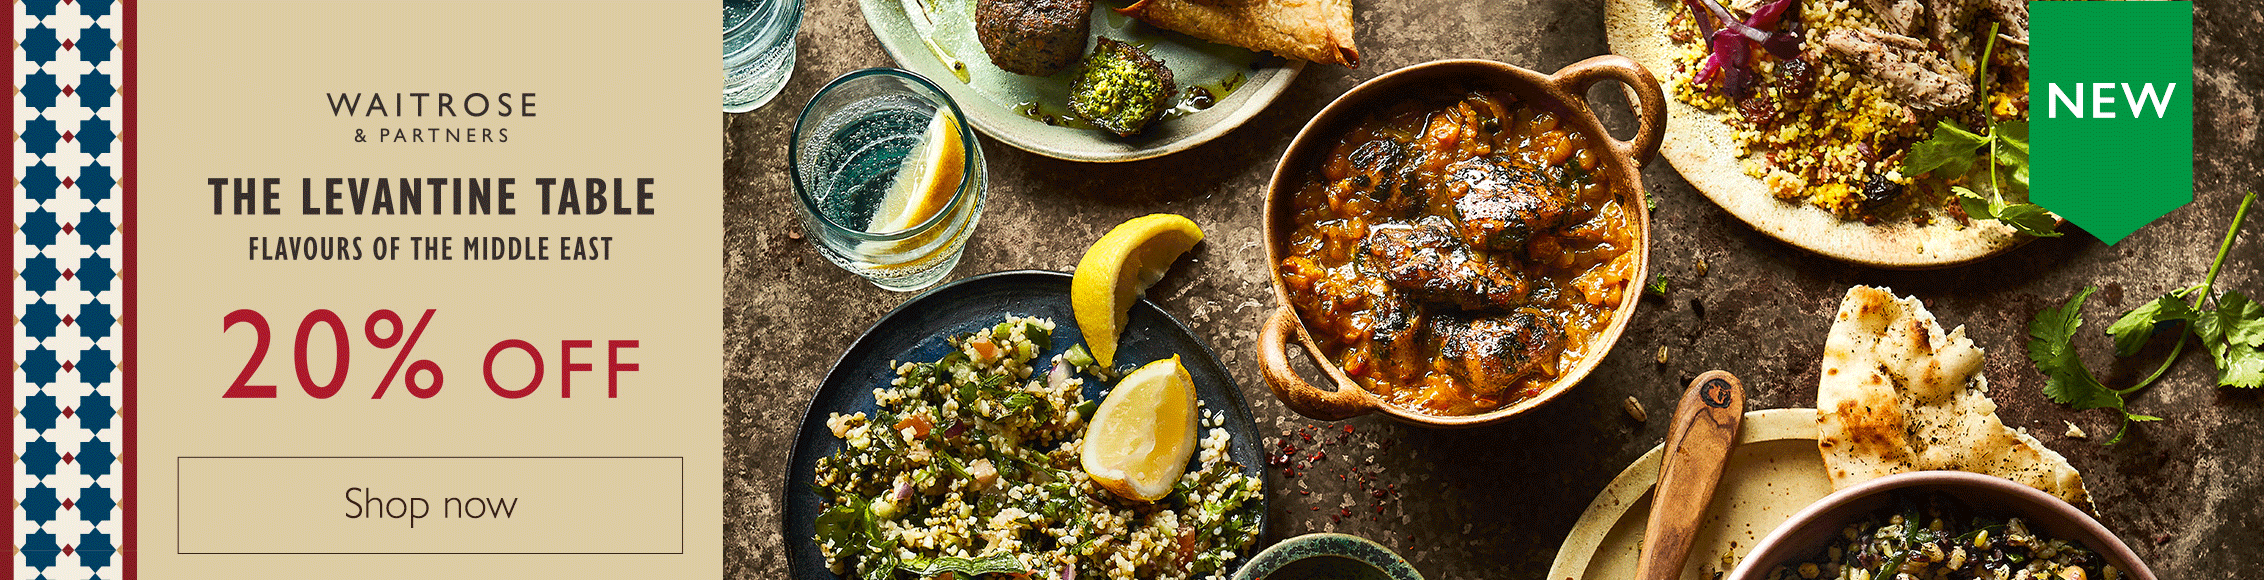 New - Waitrose & Partners - The Levantine Table - Flavours of the middle east - 20% OFF - Shop now